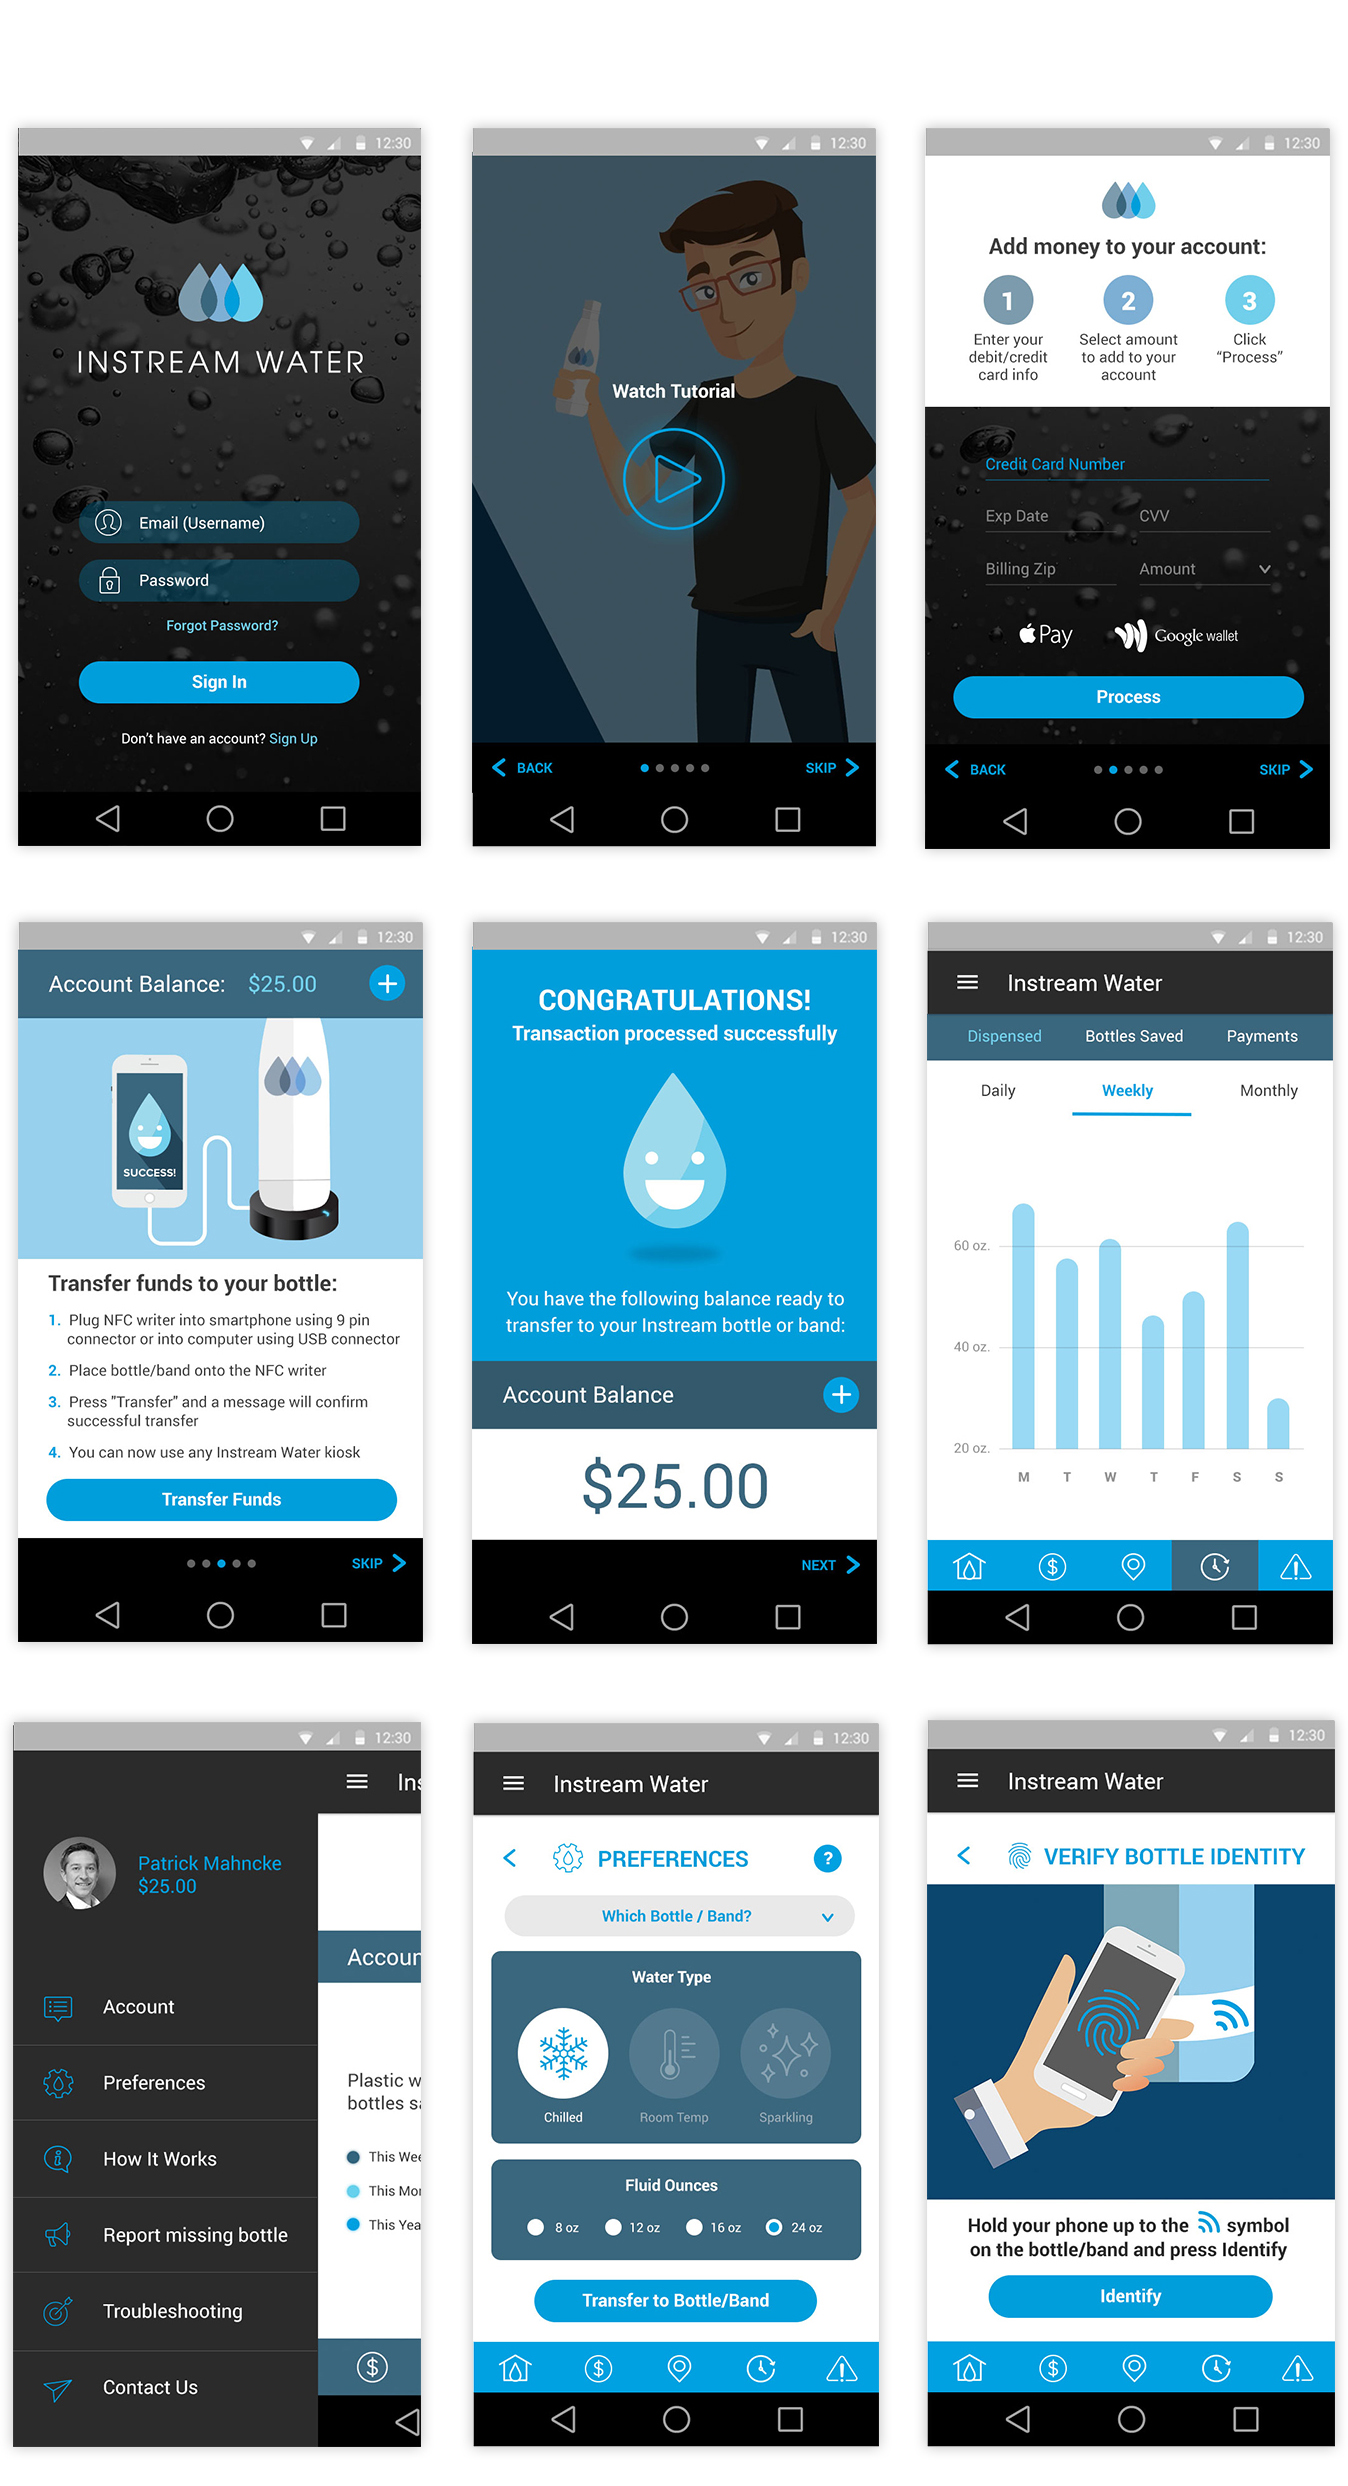 mobile website design comps for instream water